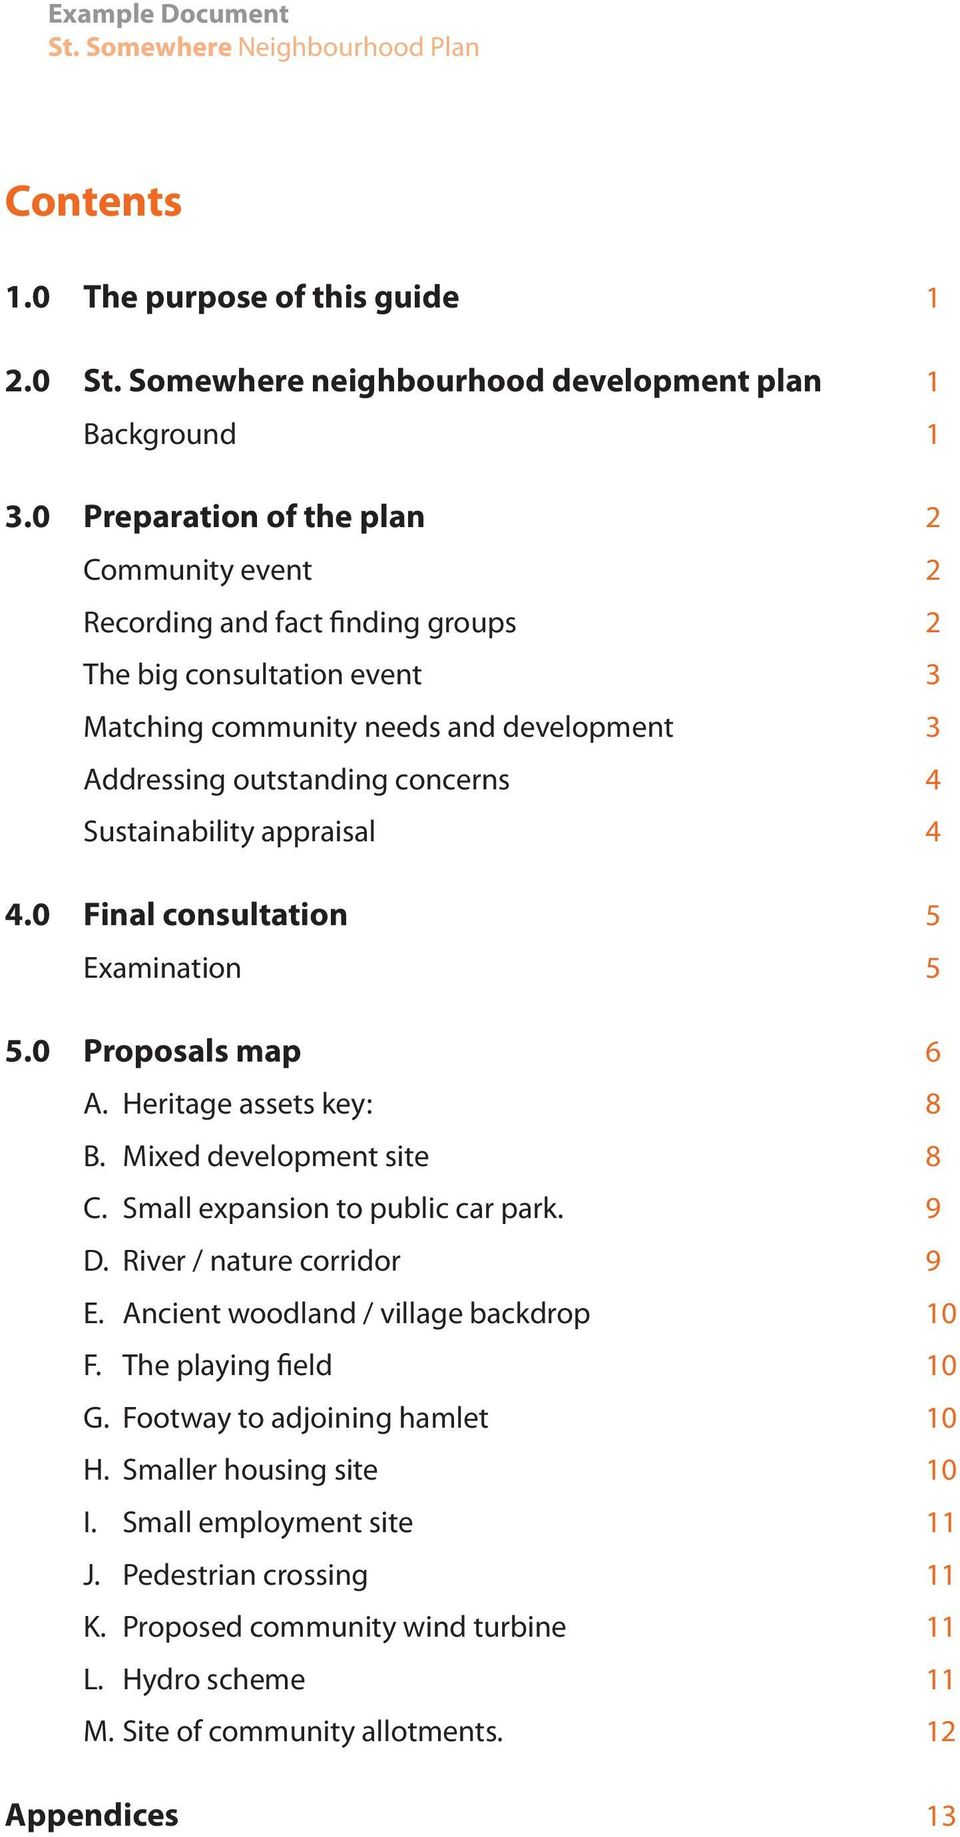 Sustainability appraisal 4 4.0 Final consultation 5 Examination 5 5.0 Proposals map 6 A. Heritage assets key: 8 B. Mixed development site 8 C. Small expansion to public car park. 9 D.